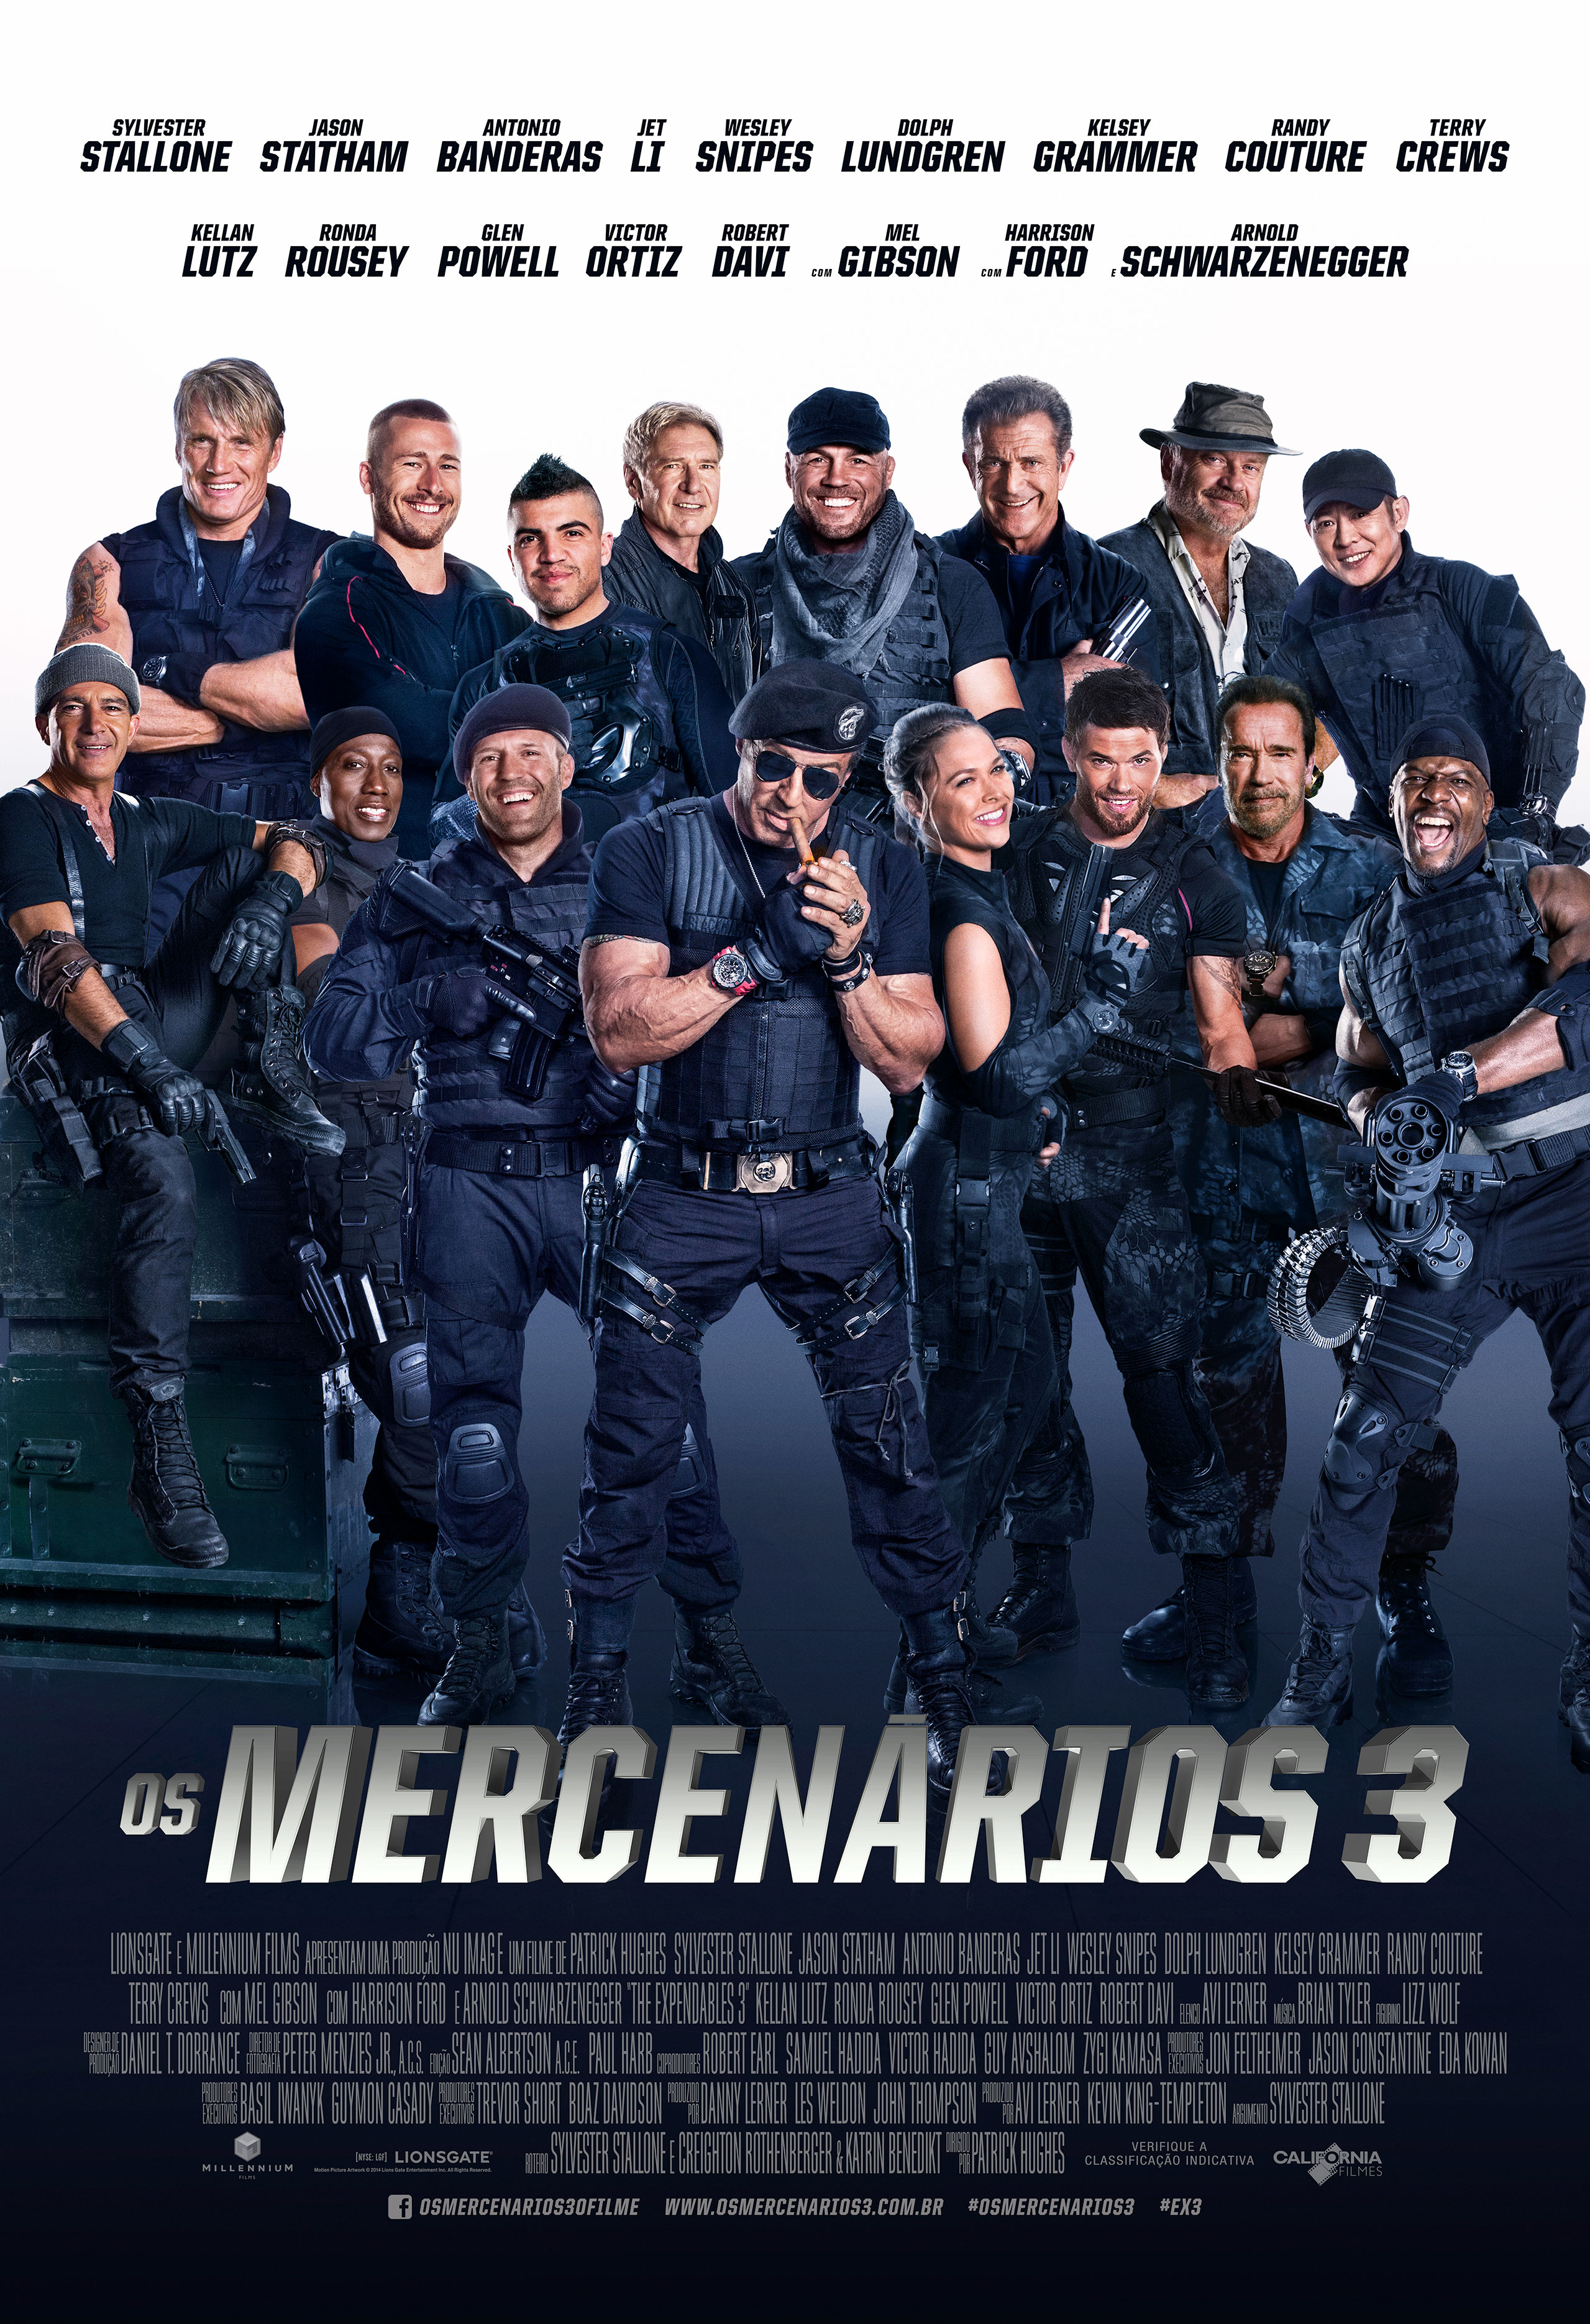 The Expendables 3-Official Poster Banner PROMO XLG-15JULHO2014